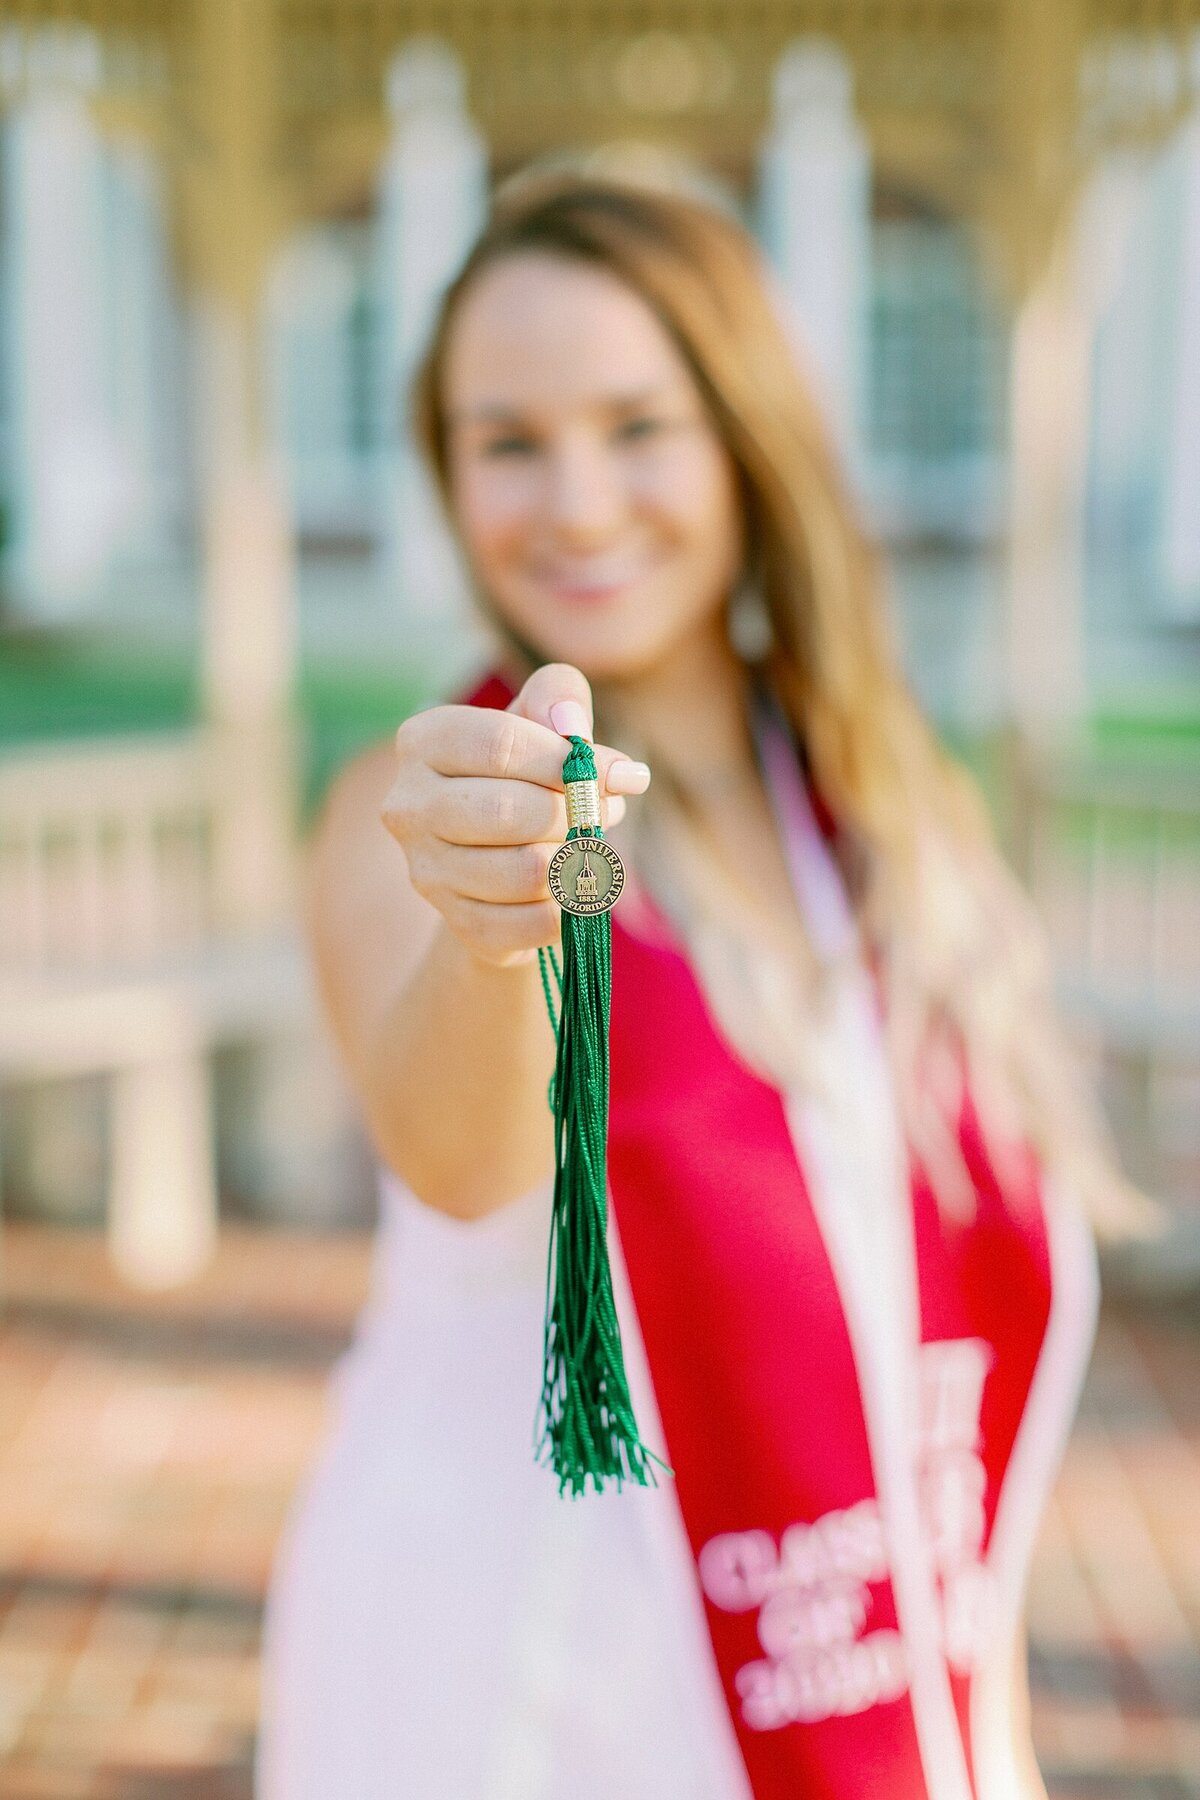 IPhillips Stetson College DeLand Florida Senior Portraits Photographer Casie Marie Photography-62